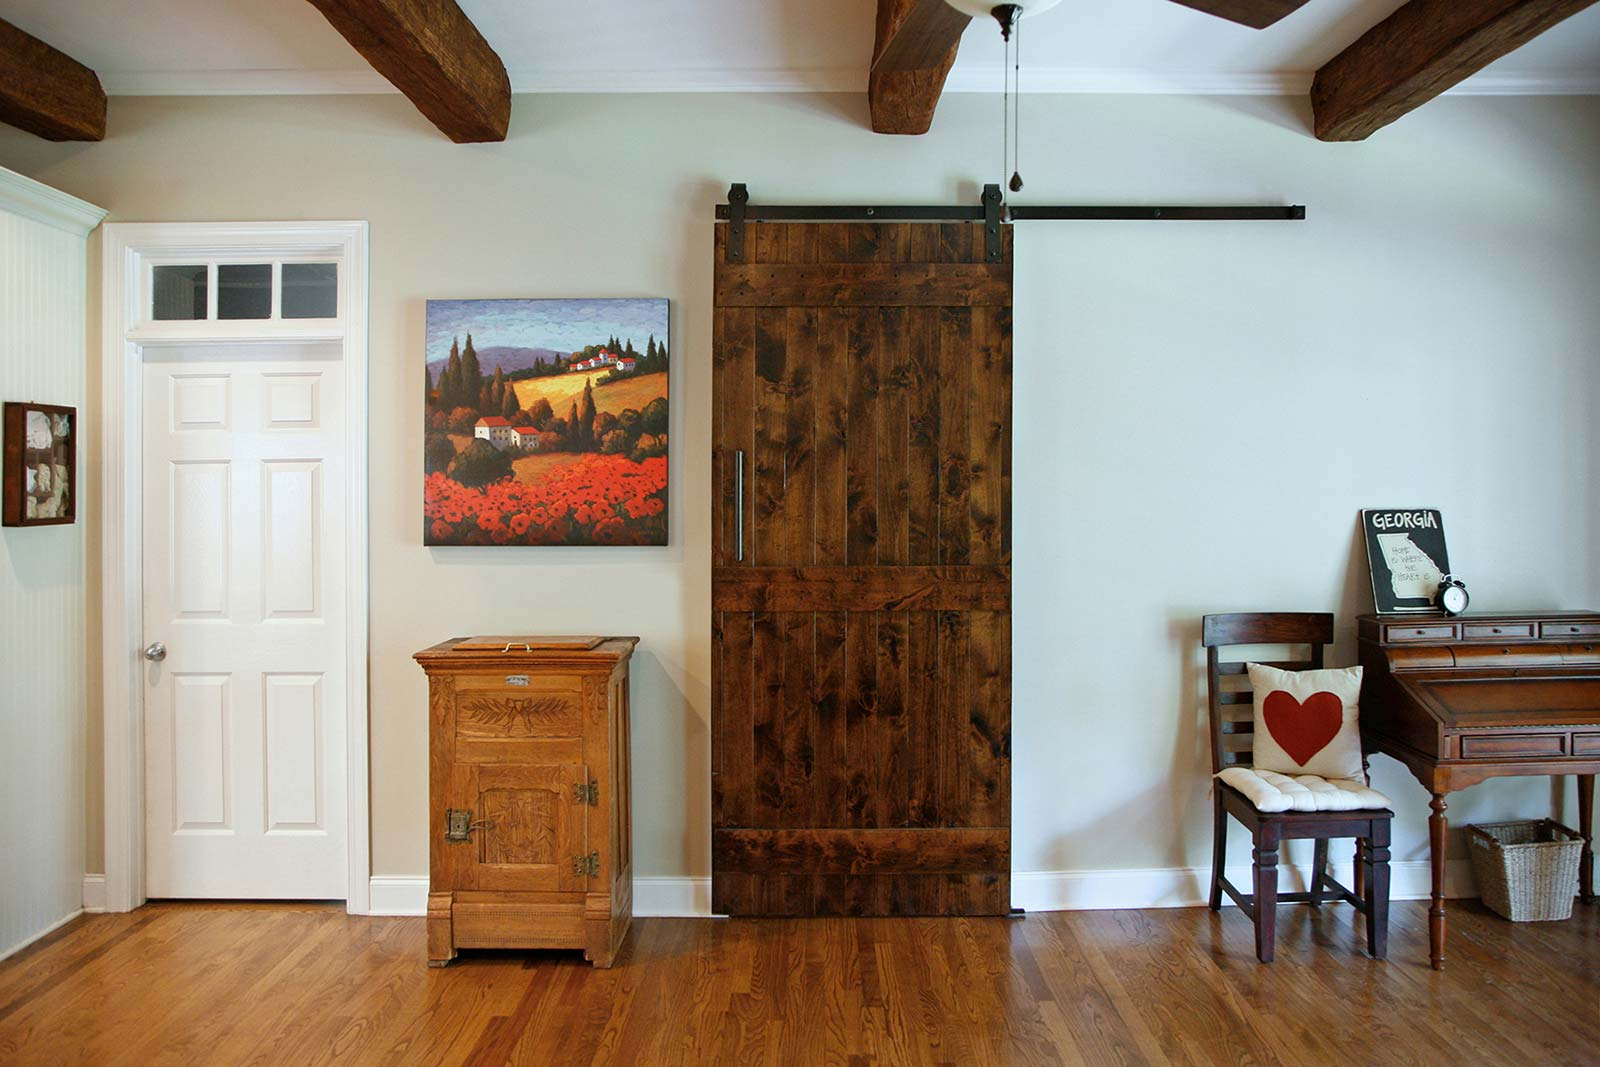 Single barndoor style door, closed